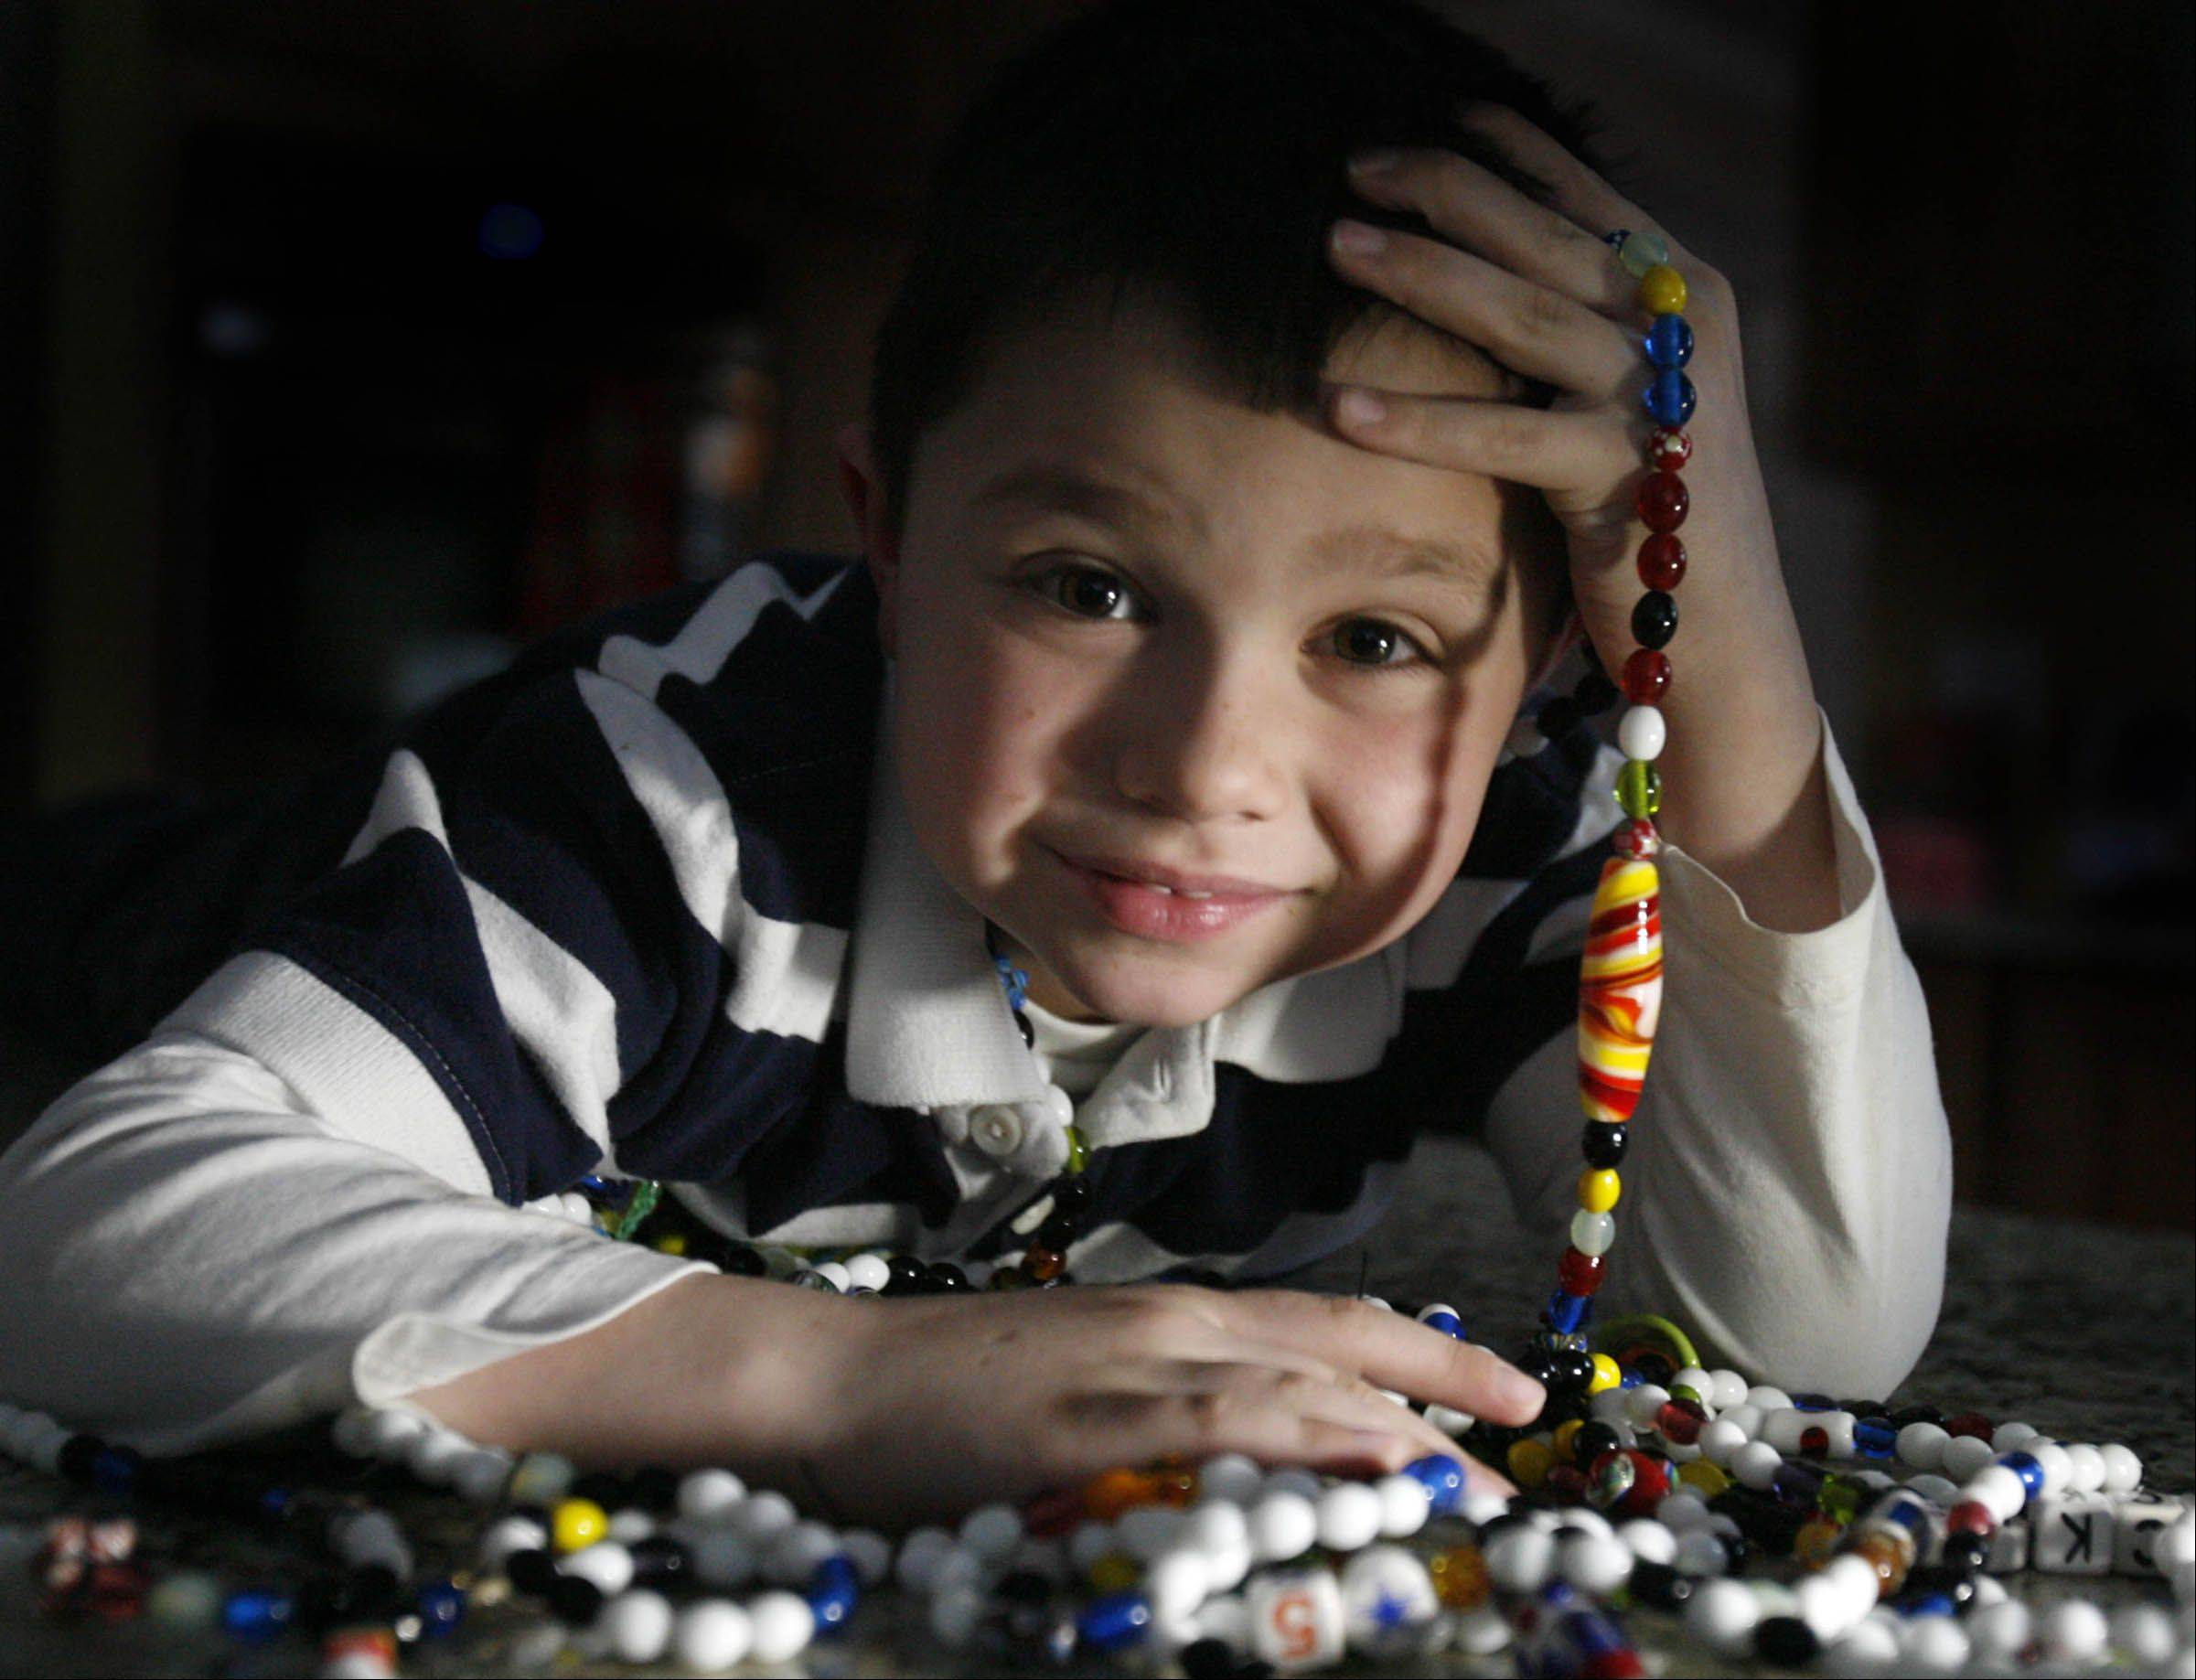 Mundelein first-grader Jack Czapla, 6, of Mundelein is fighting leukemia and was named the Leukemia and Lymphoma Association Boy of the Year for 2012. Here with beads nurses gave him while he was in the hospital.